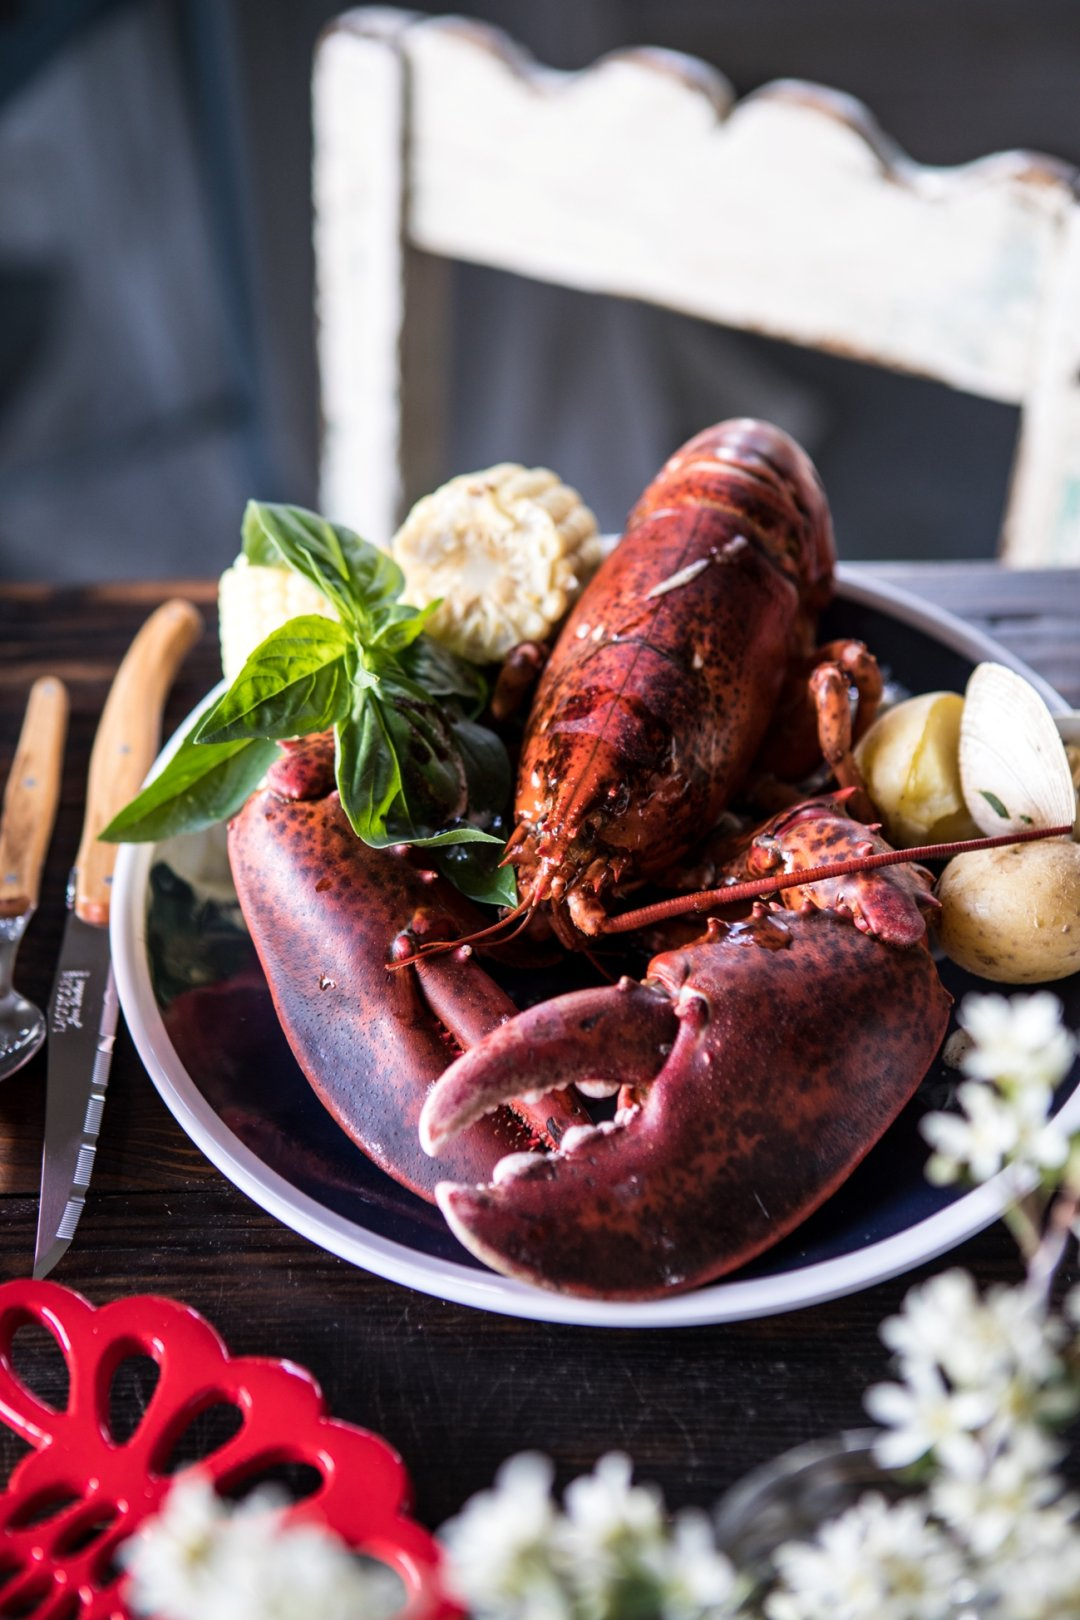 Cooked lobster on plate on dinner table